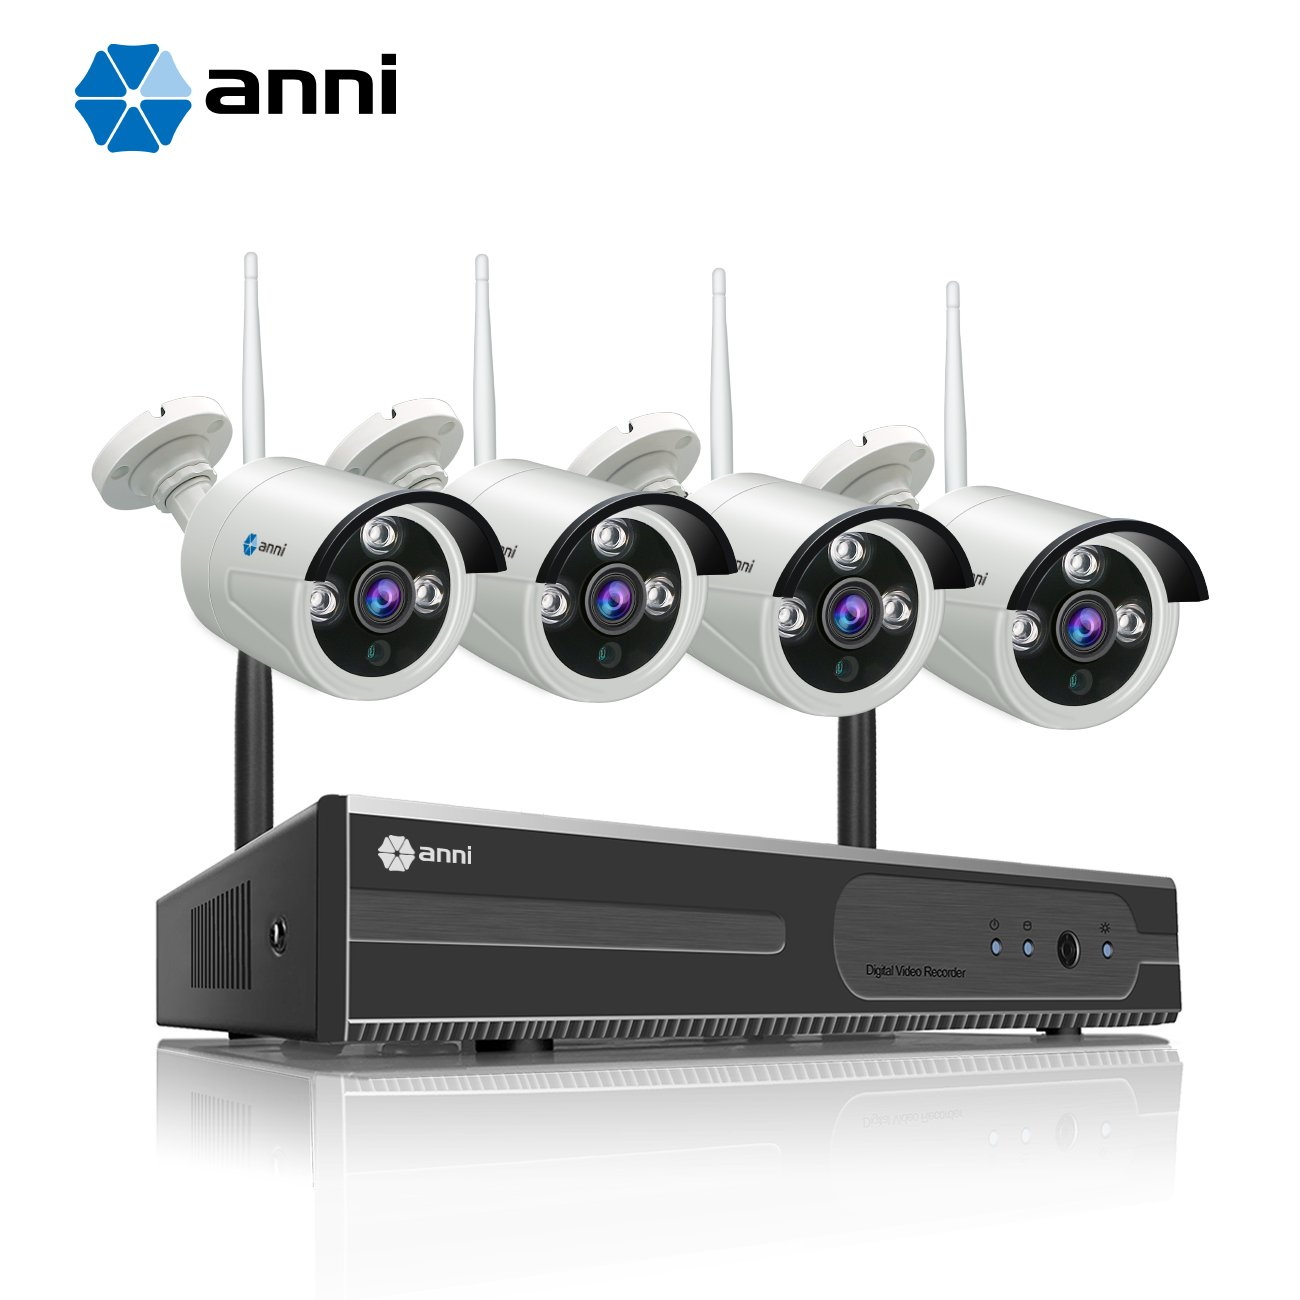 Anni 4CH 720P HD Surveillance System, Wireless NVR Kit with 4 x 1.0MP Wireless Indoor Outdoor Security Cameras, P2P, 65ft Night Vision, NO HDD by Anni